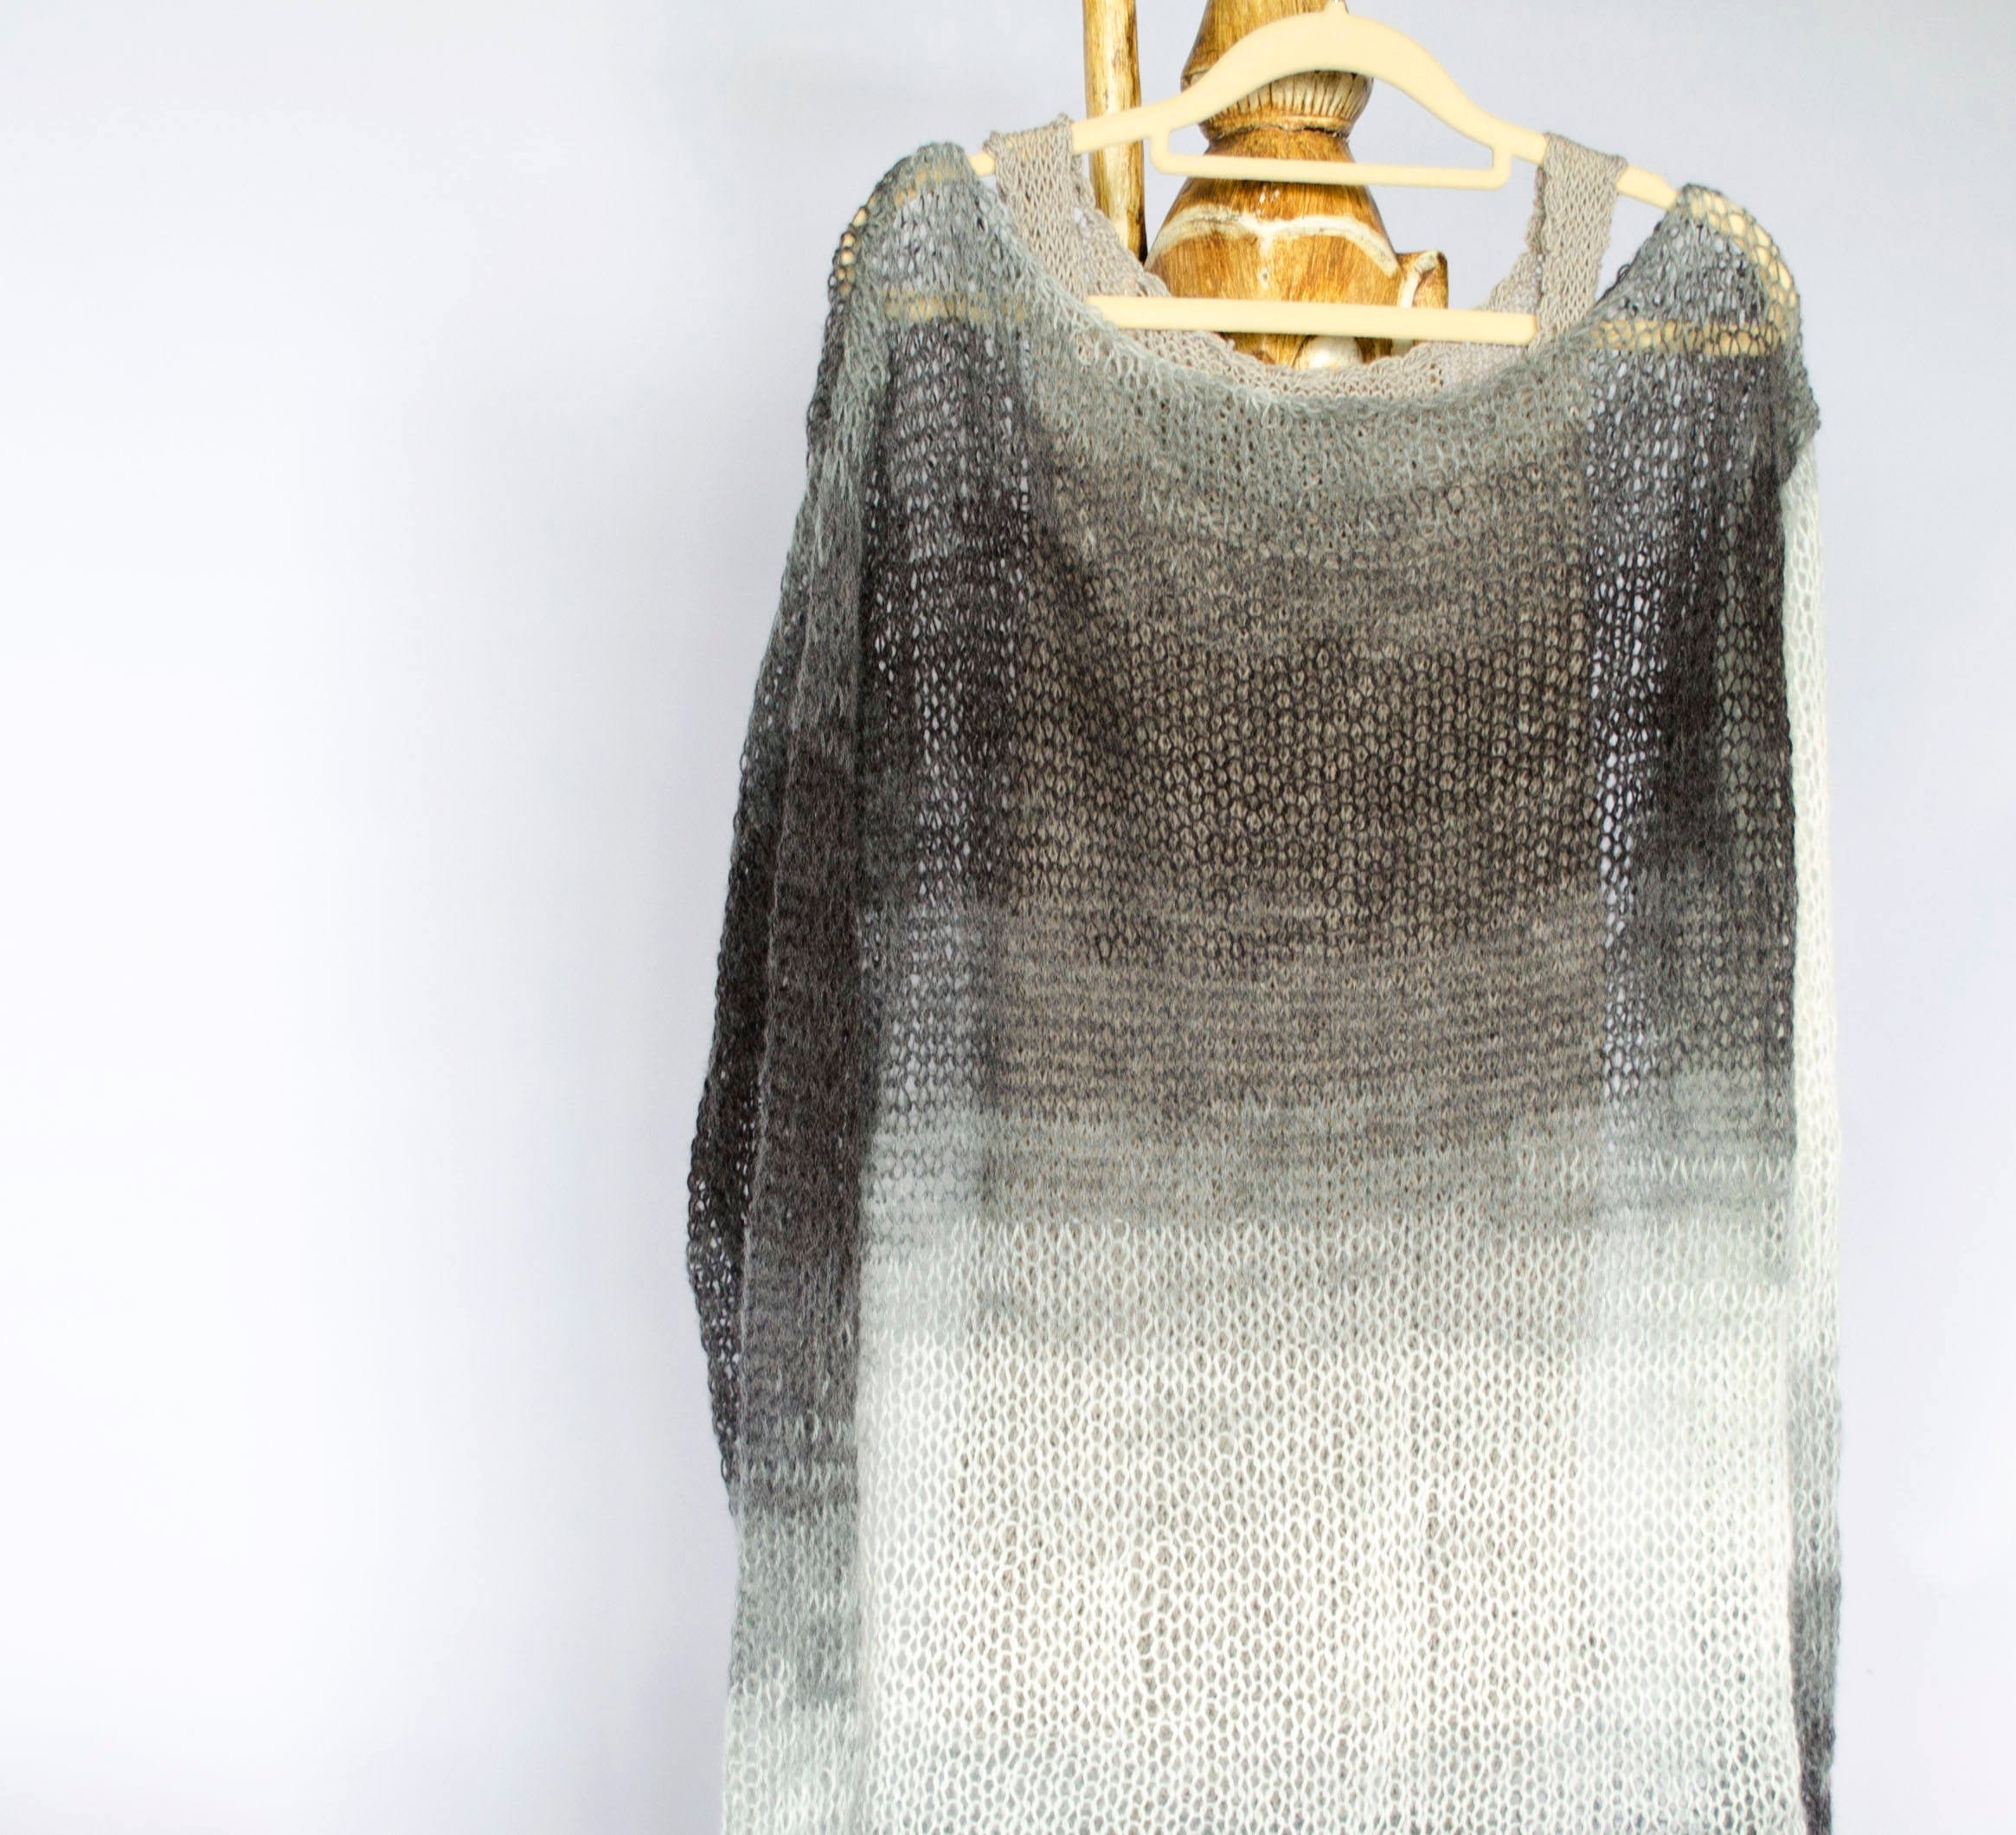 Handmade Mohair Sweater Cozy See Through Knit Top - Babazen